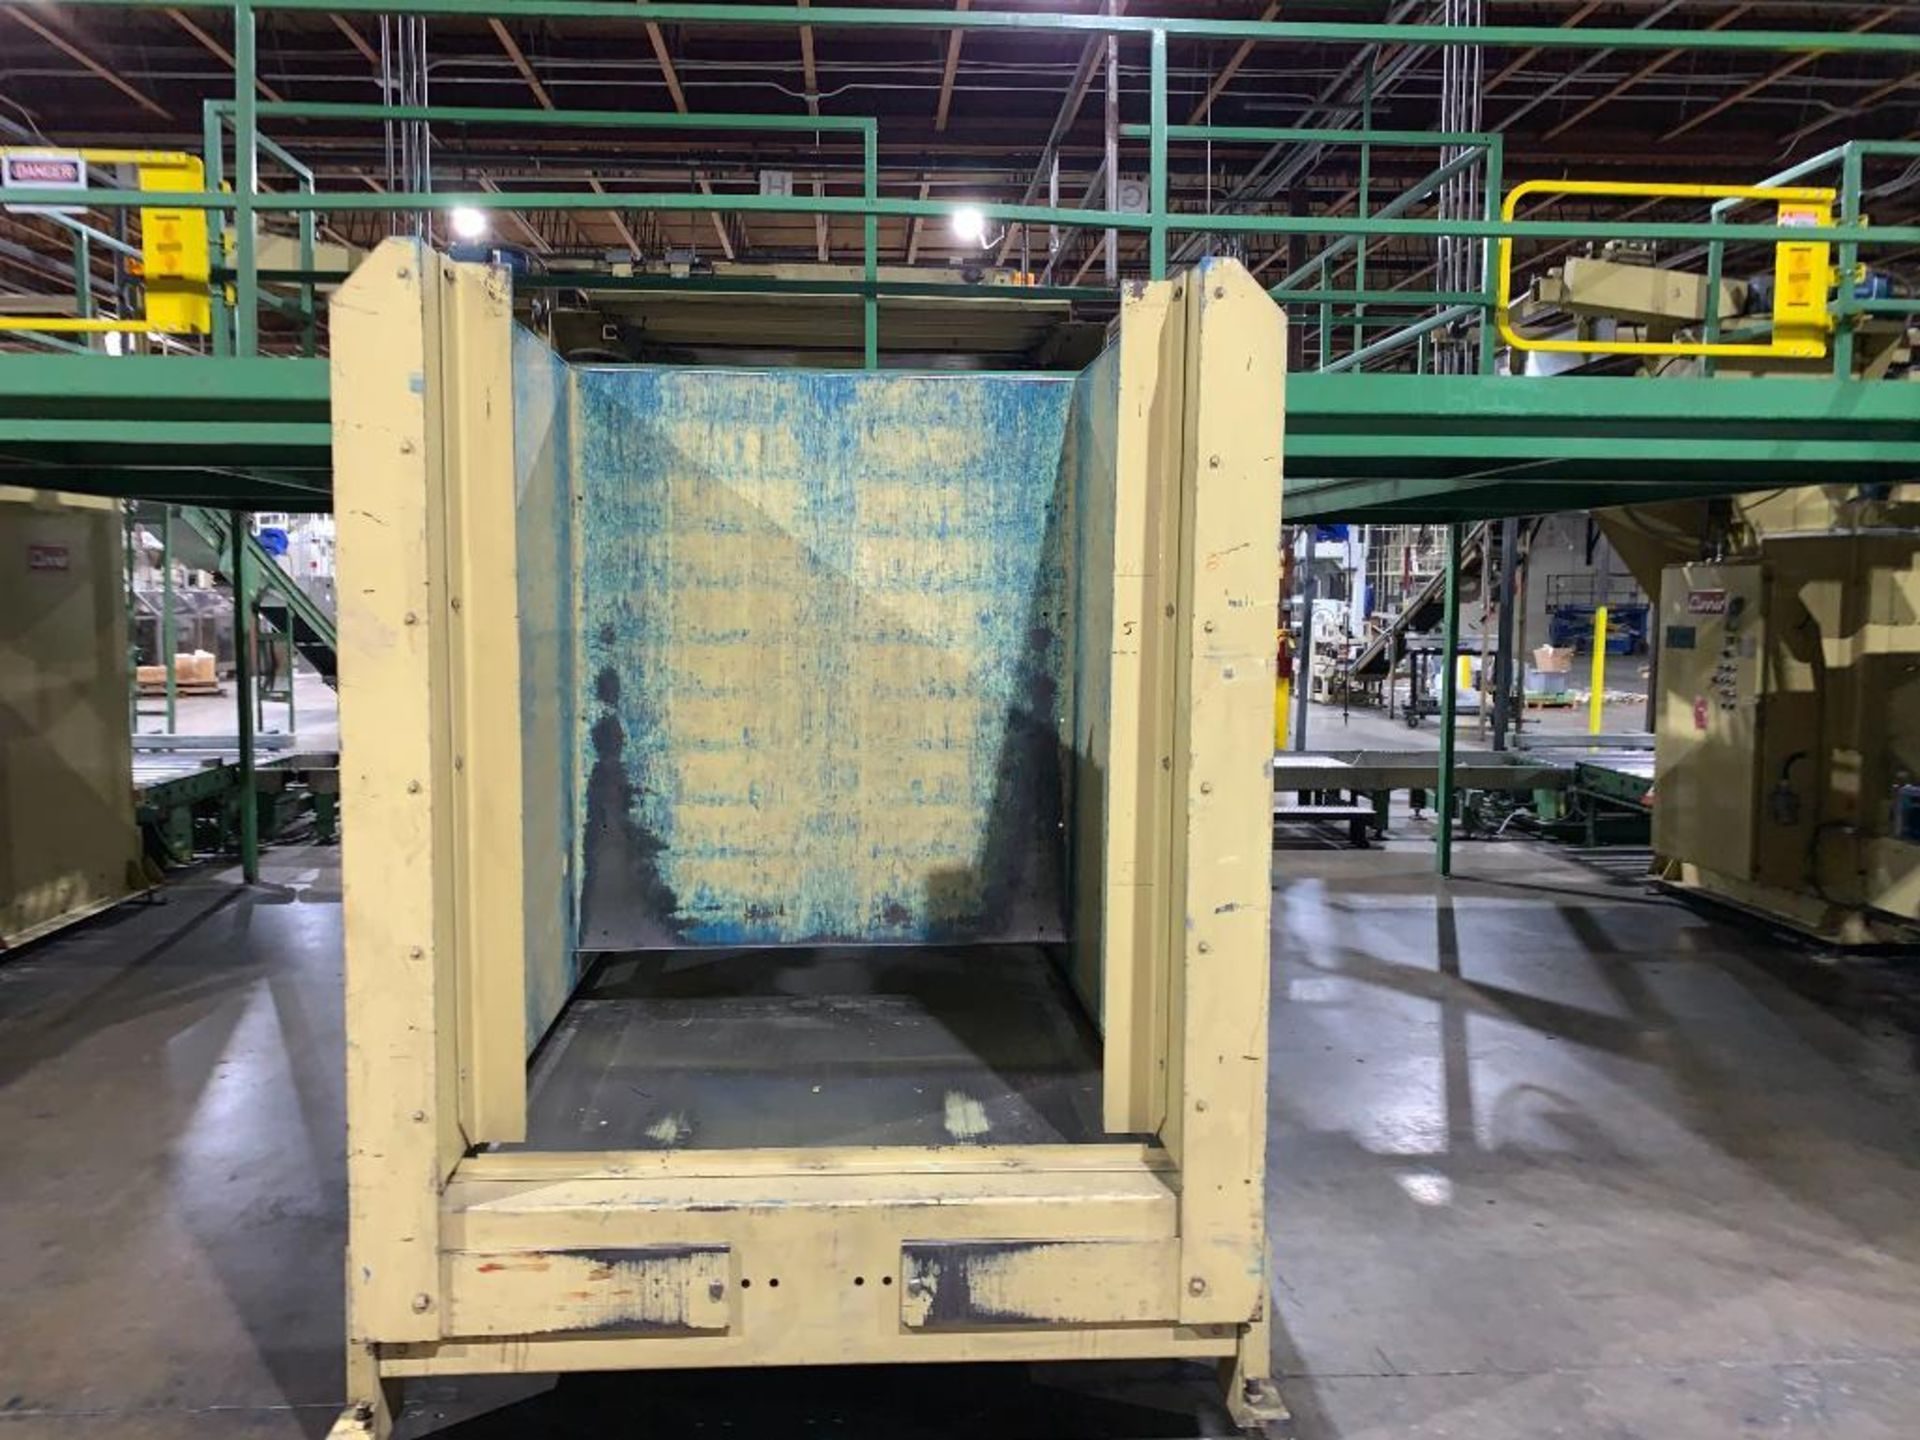 1992 Currie top to bottom palletizer, machine number LSP-5-1177 - Image 14 of 53